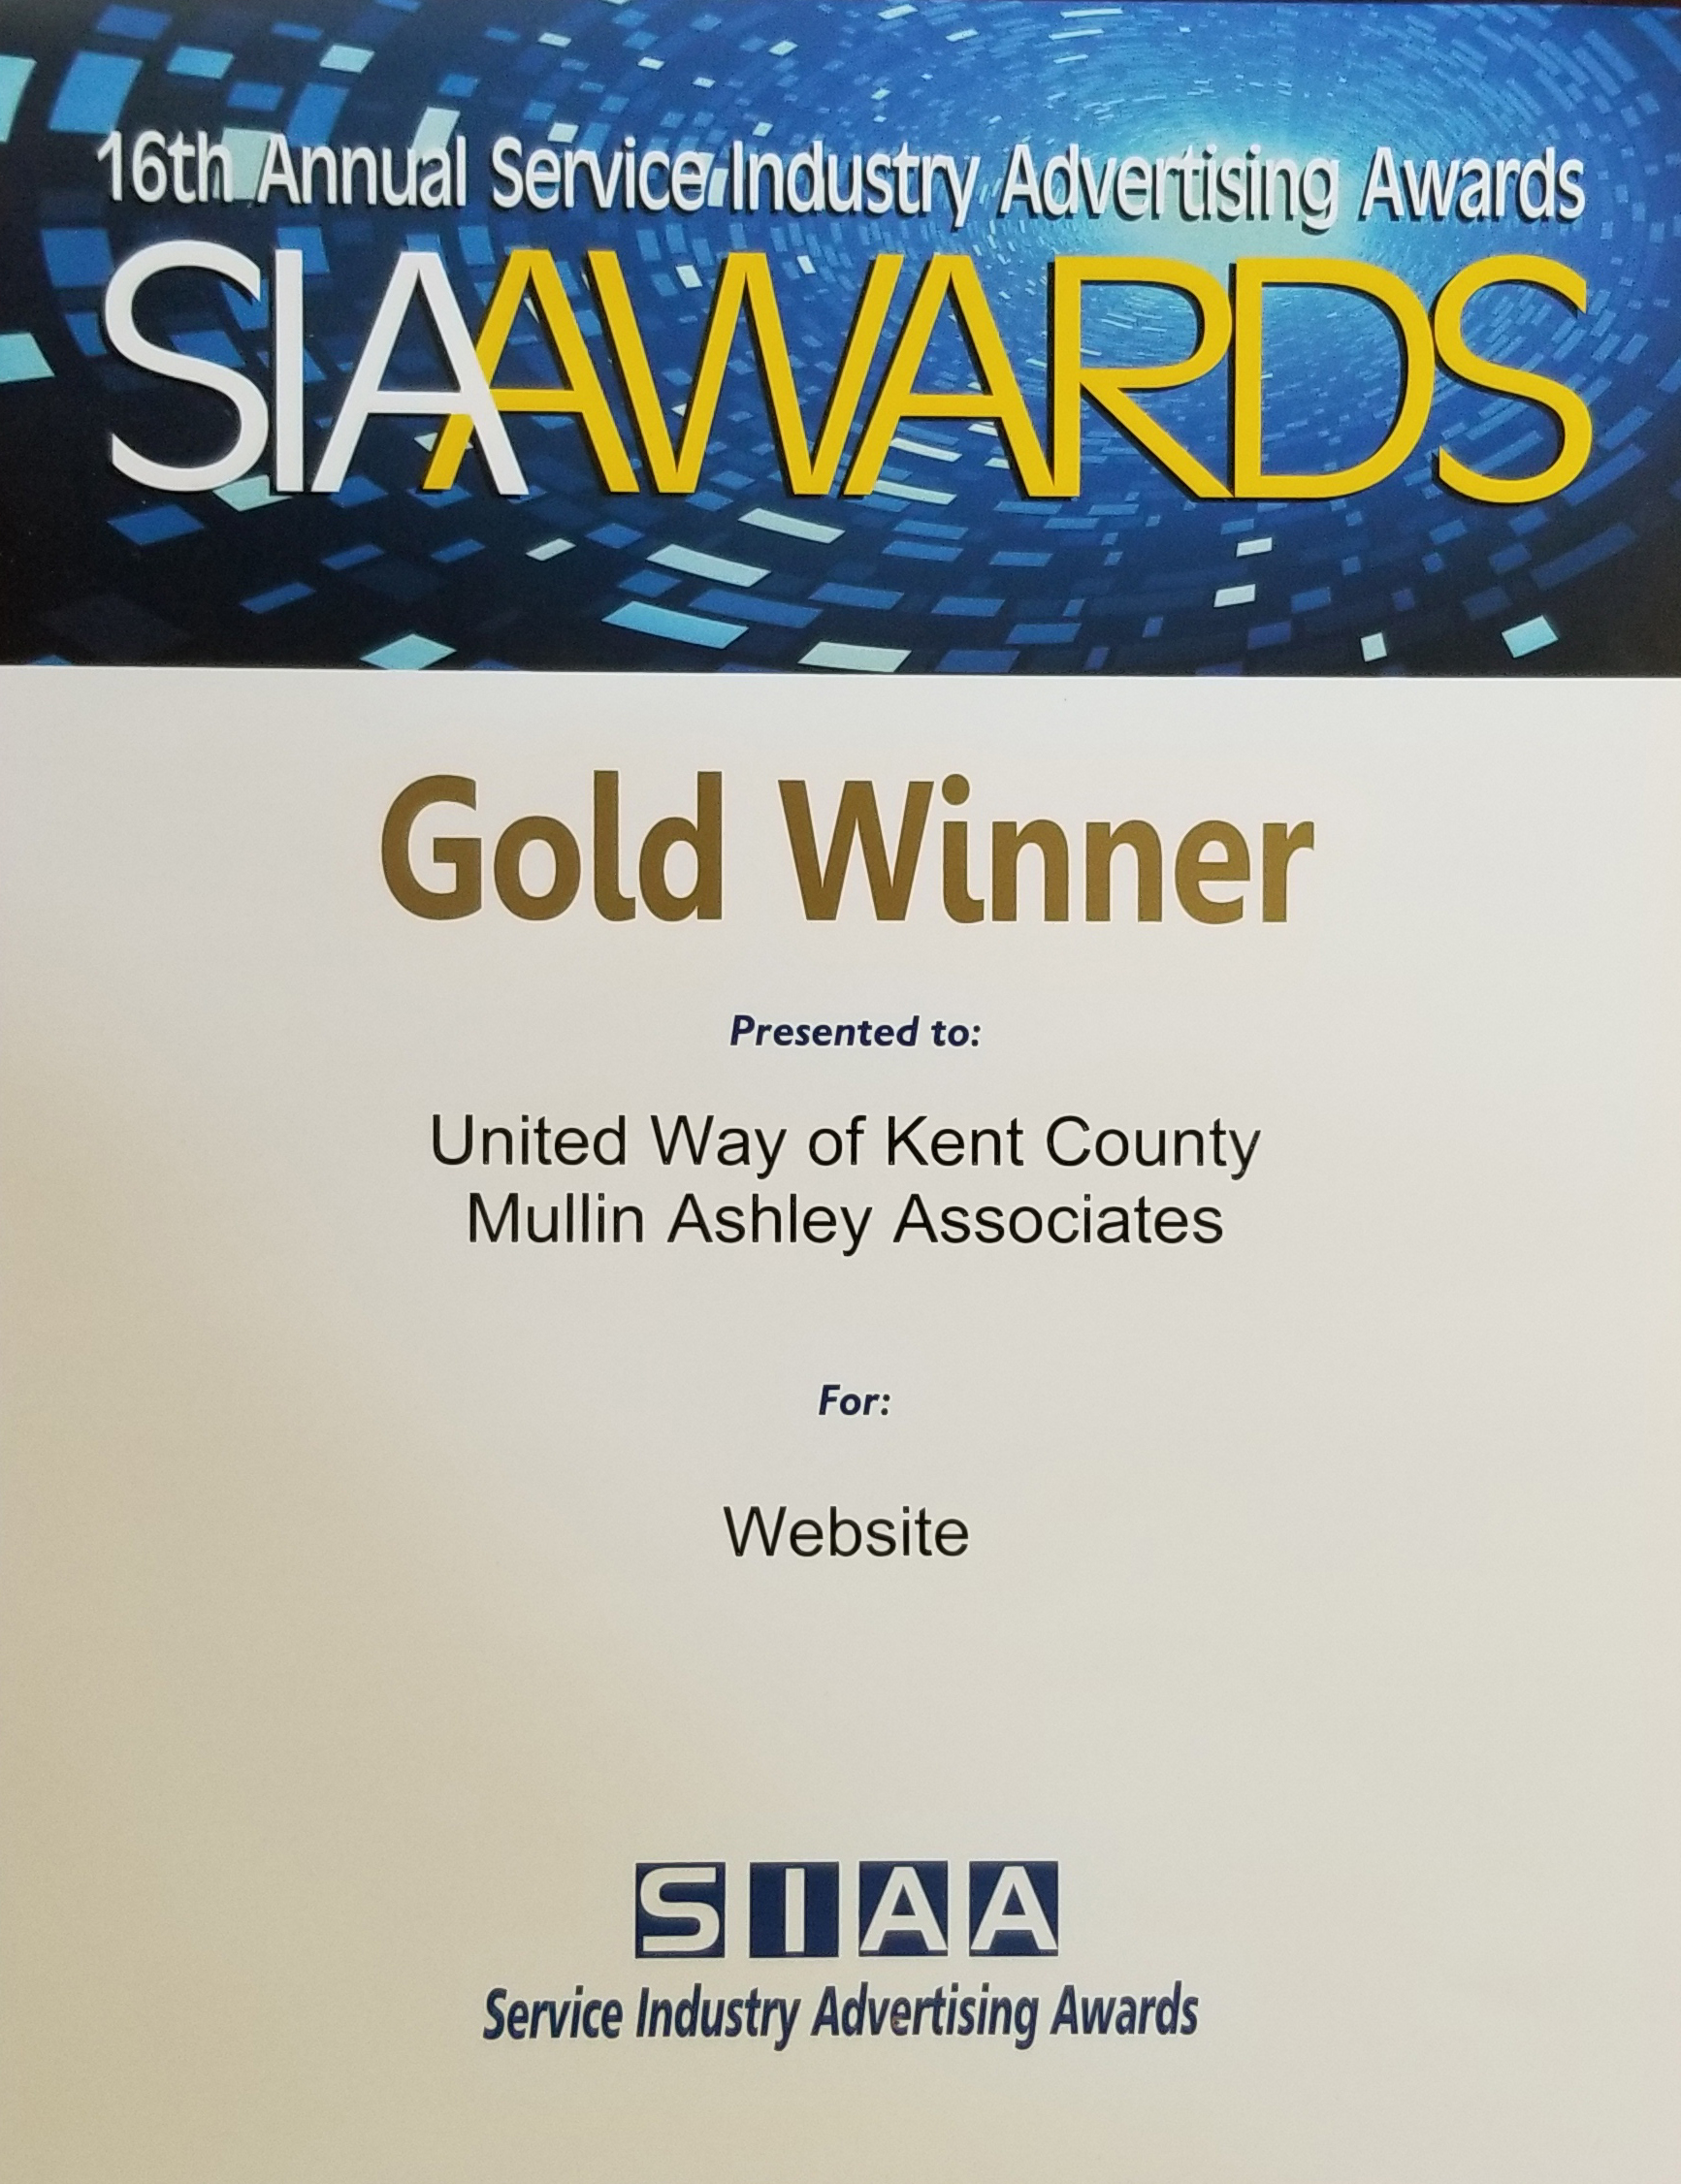 UNITED WAY OF KENT COUNTY'S WEBSITE WINS TWO NATIONAL MARKETING COMMUNICATIONS AWARDS